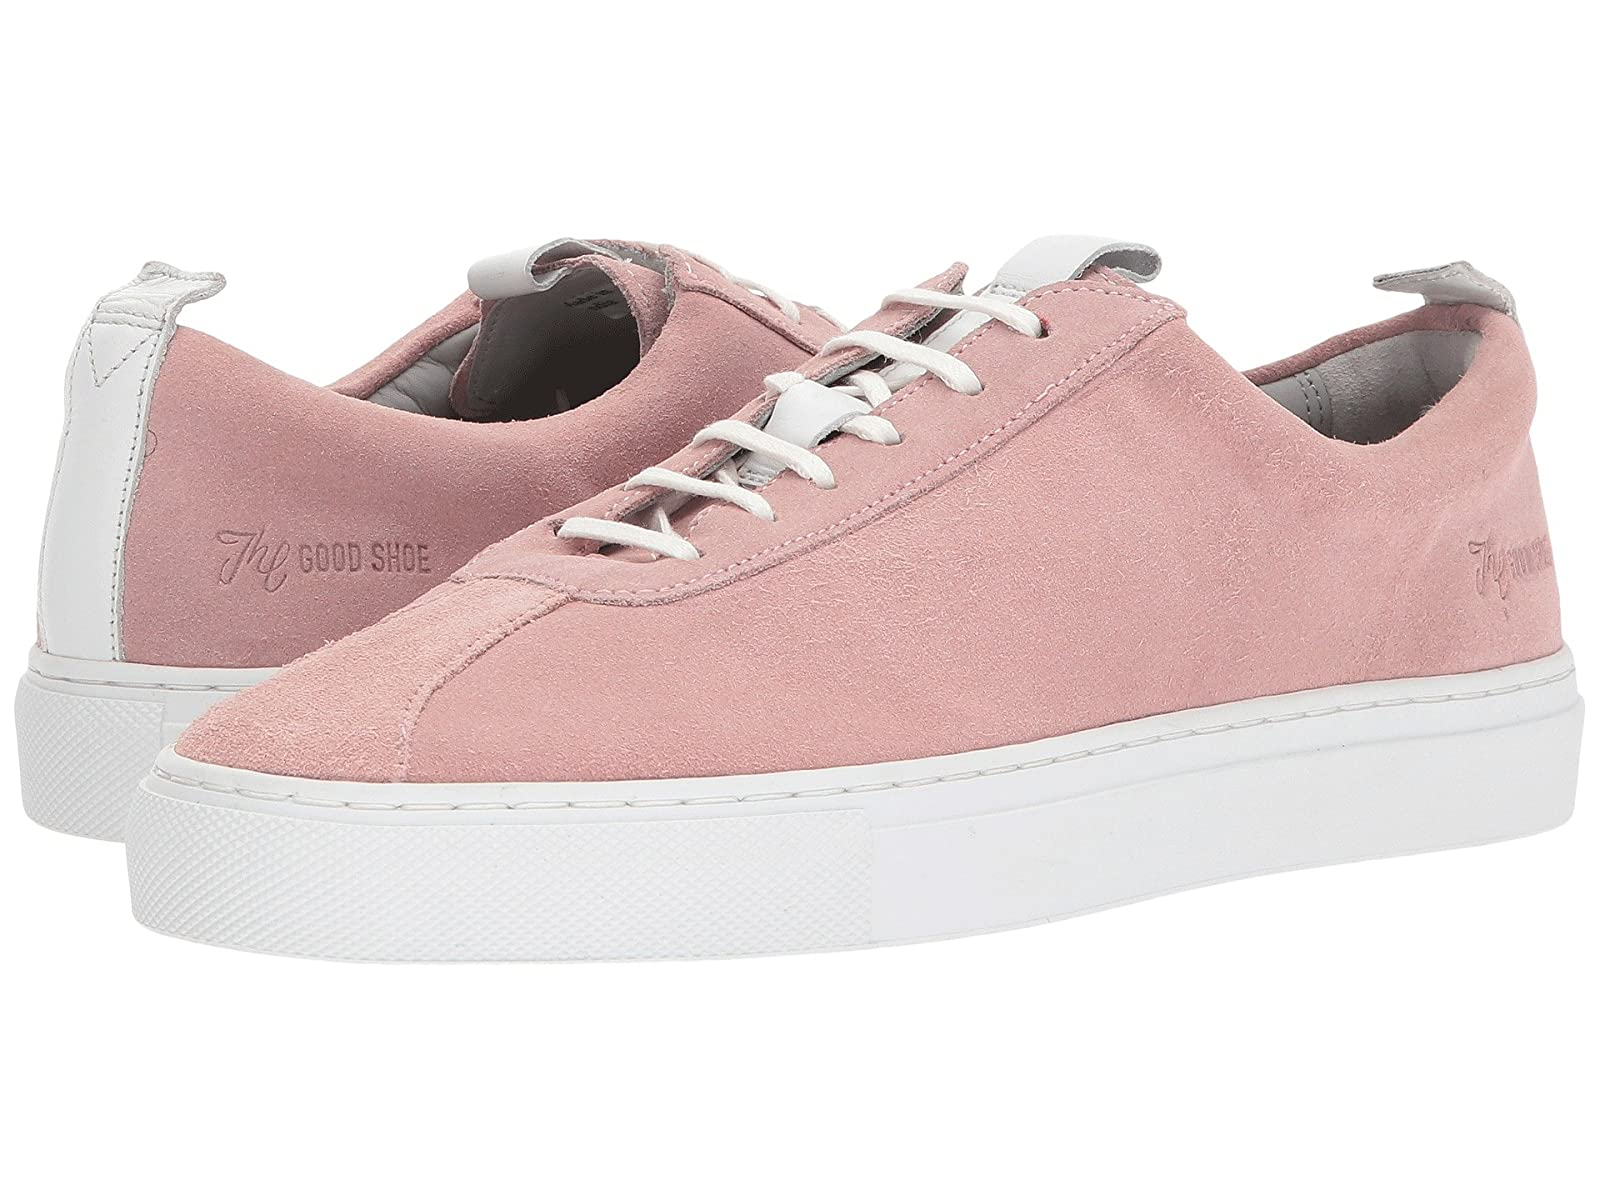 Grenson Low Top SneakerCheap and distinctive eye-catching shoes